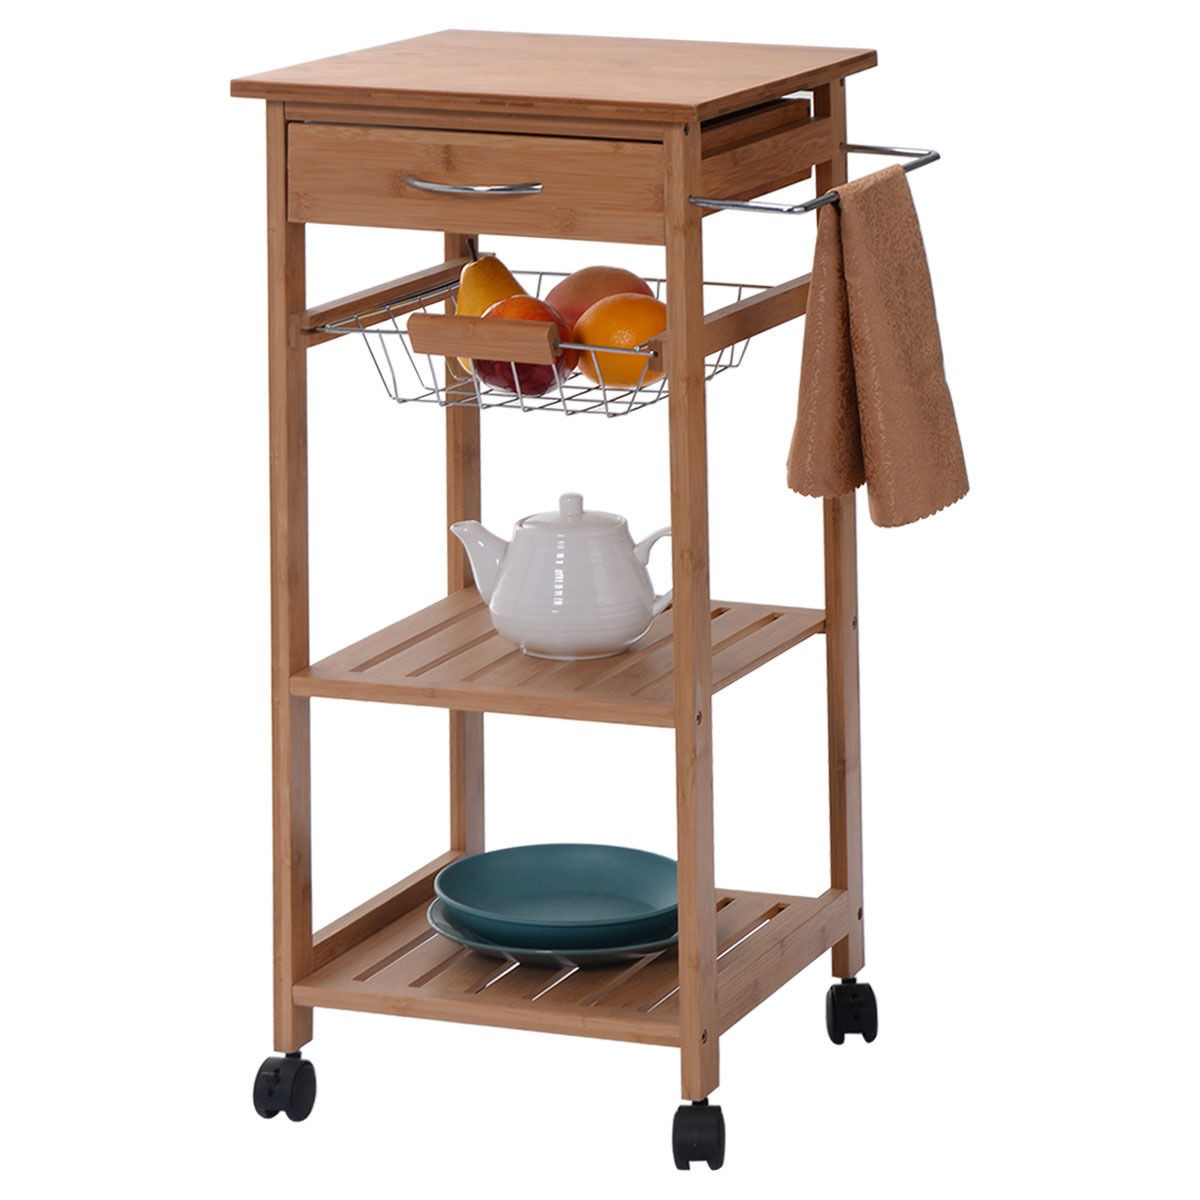 Mobility Bamboo Kitchen Trolley Cart Shelf Island Servce Countertop Basket Carts Ebay